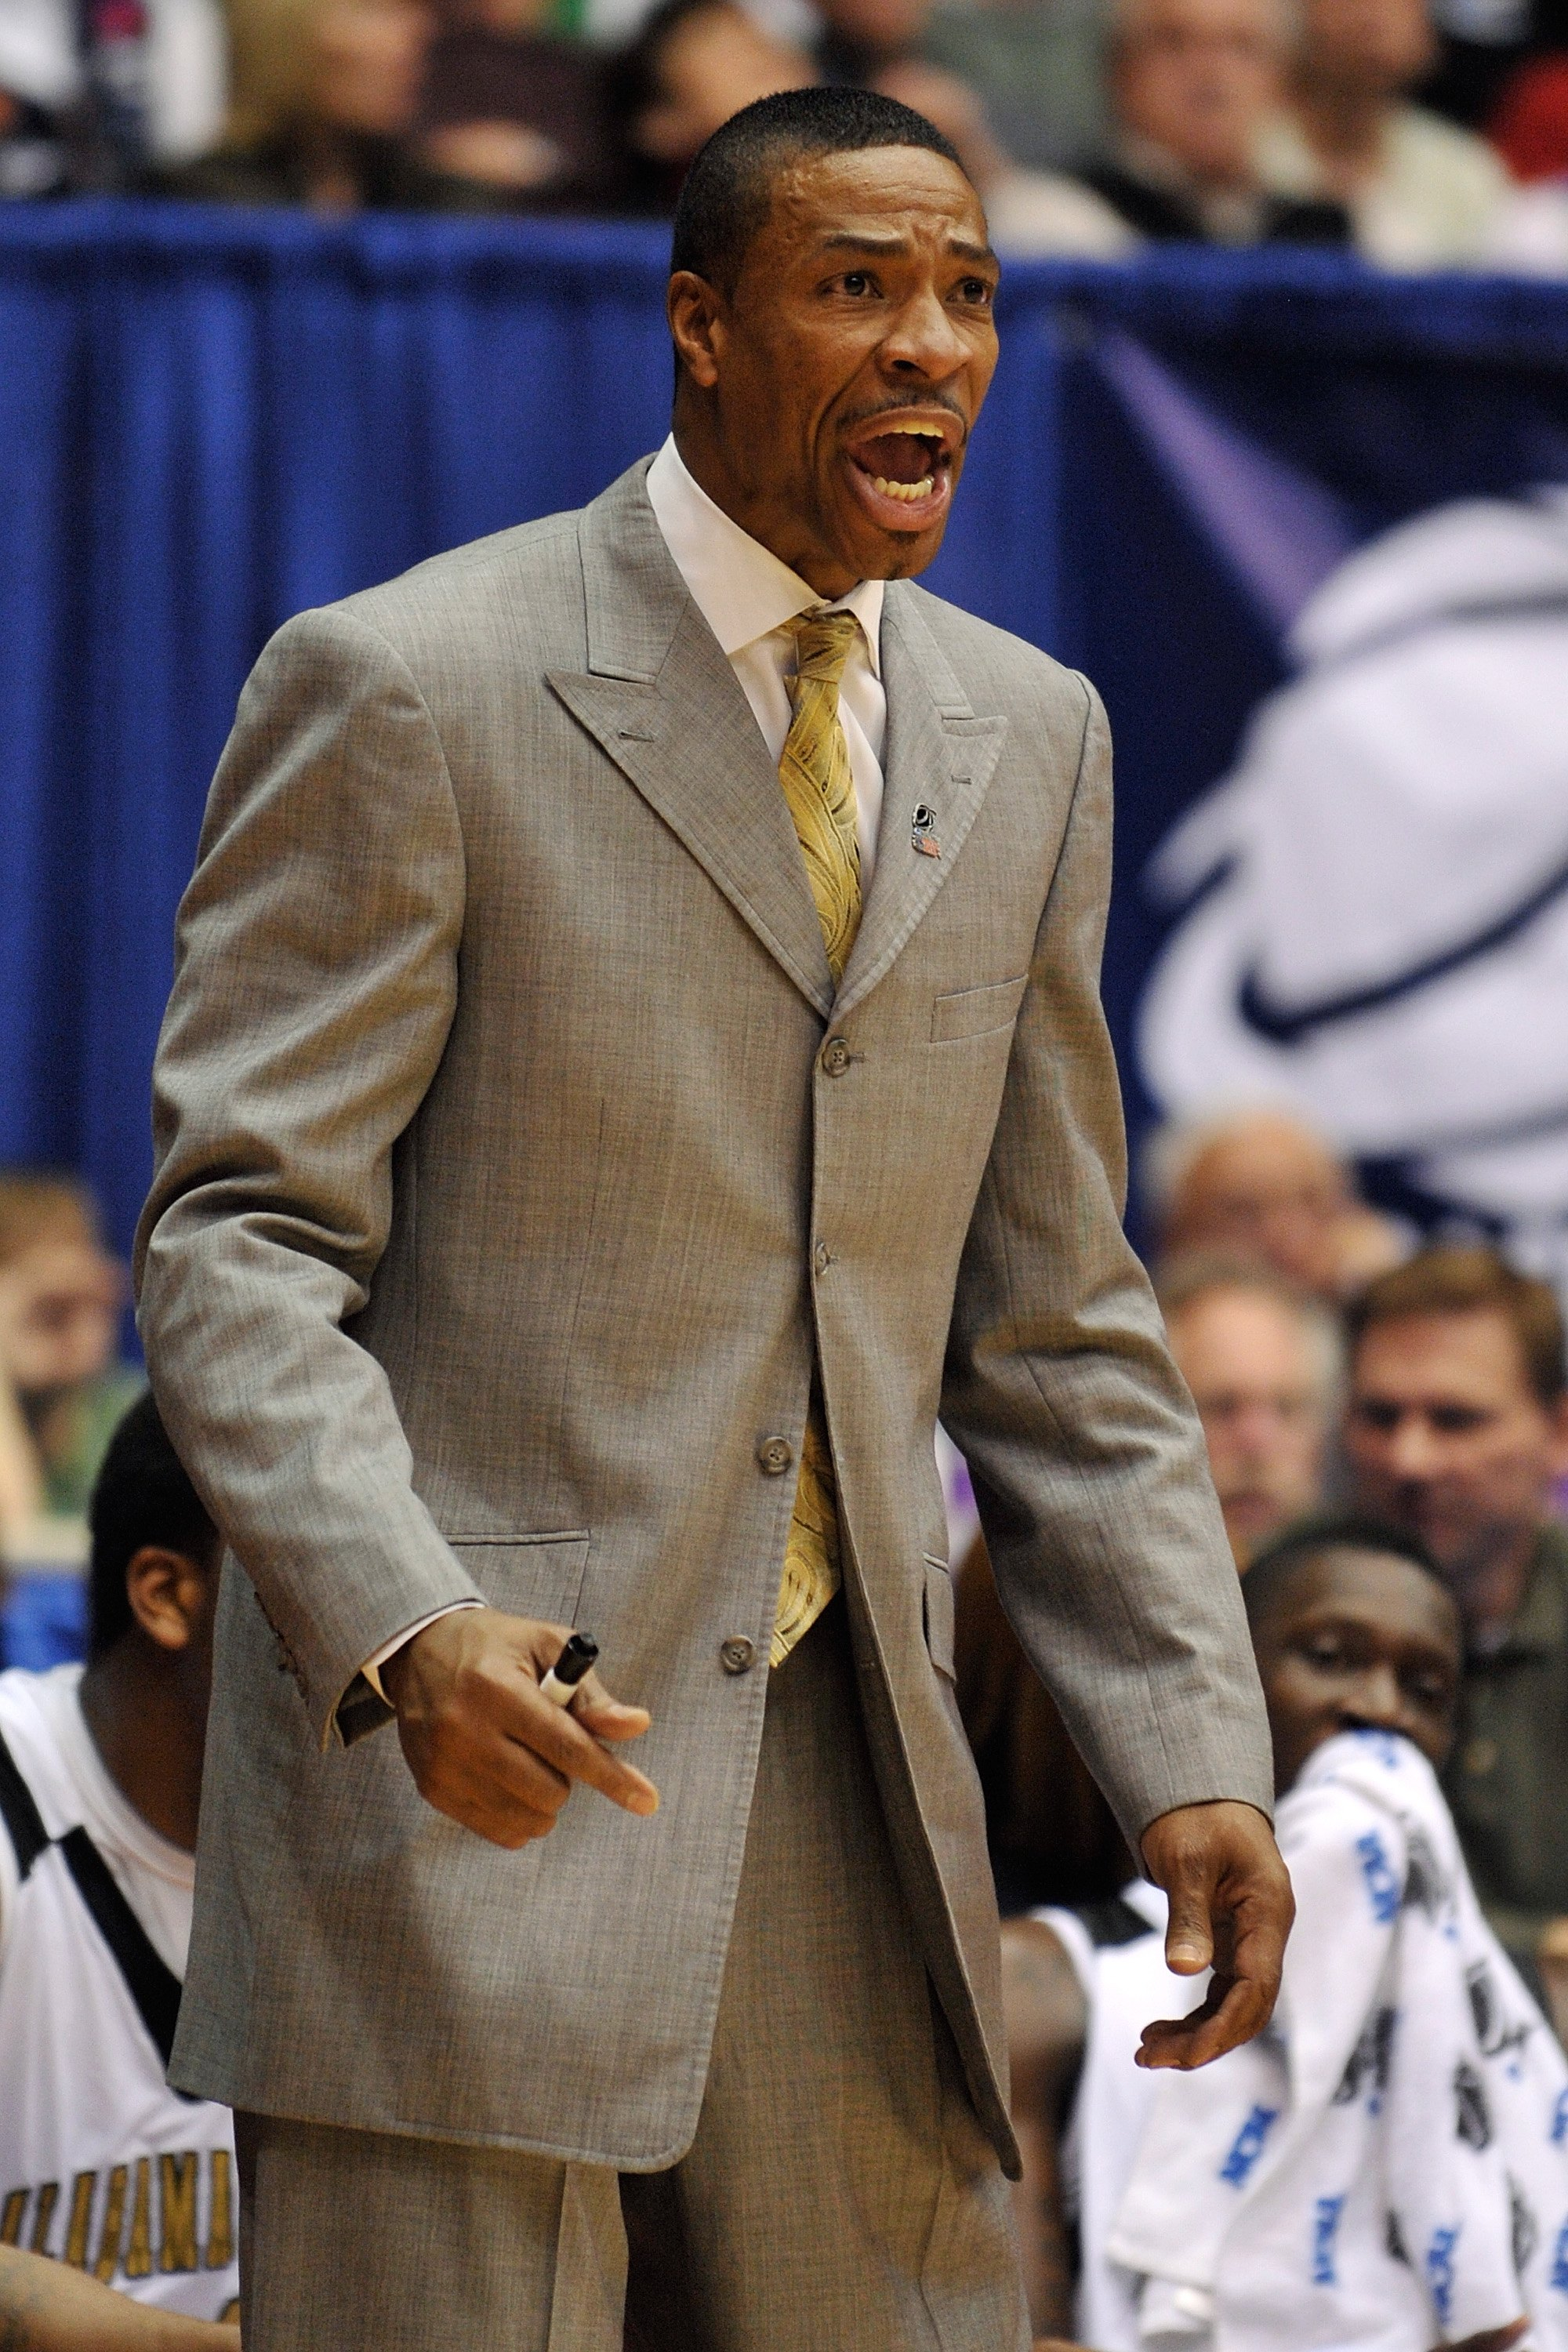 DAYTON, OH - MARCH 17: Head coach Lewis Jackson of the Alabama State Hornets shouts instructions to his team against the Morehead State Eagles during the opening round of the Men's NCAA Tournament on March 17, 2009 at the University of Dayton Arena in Day